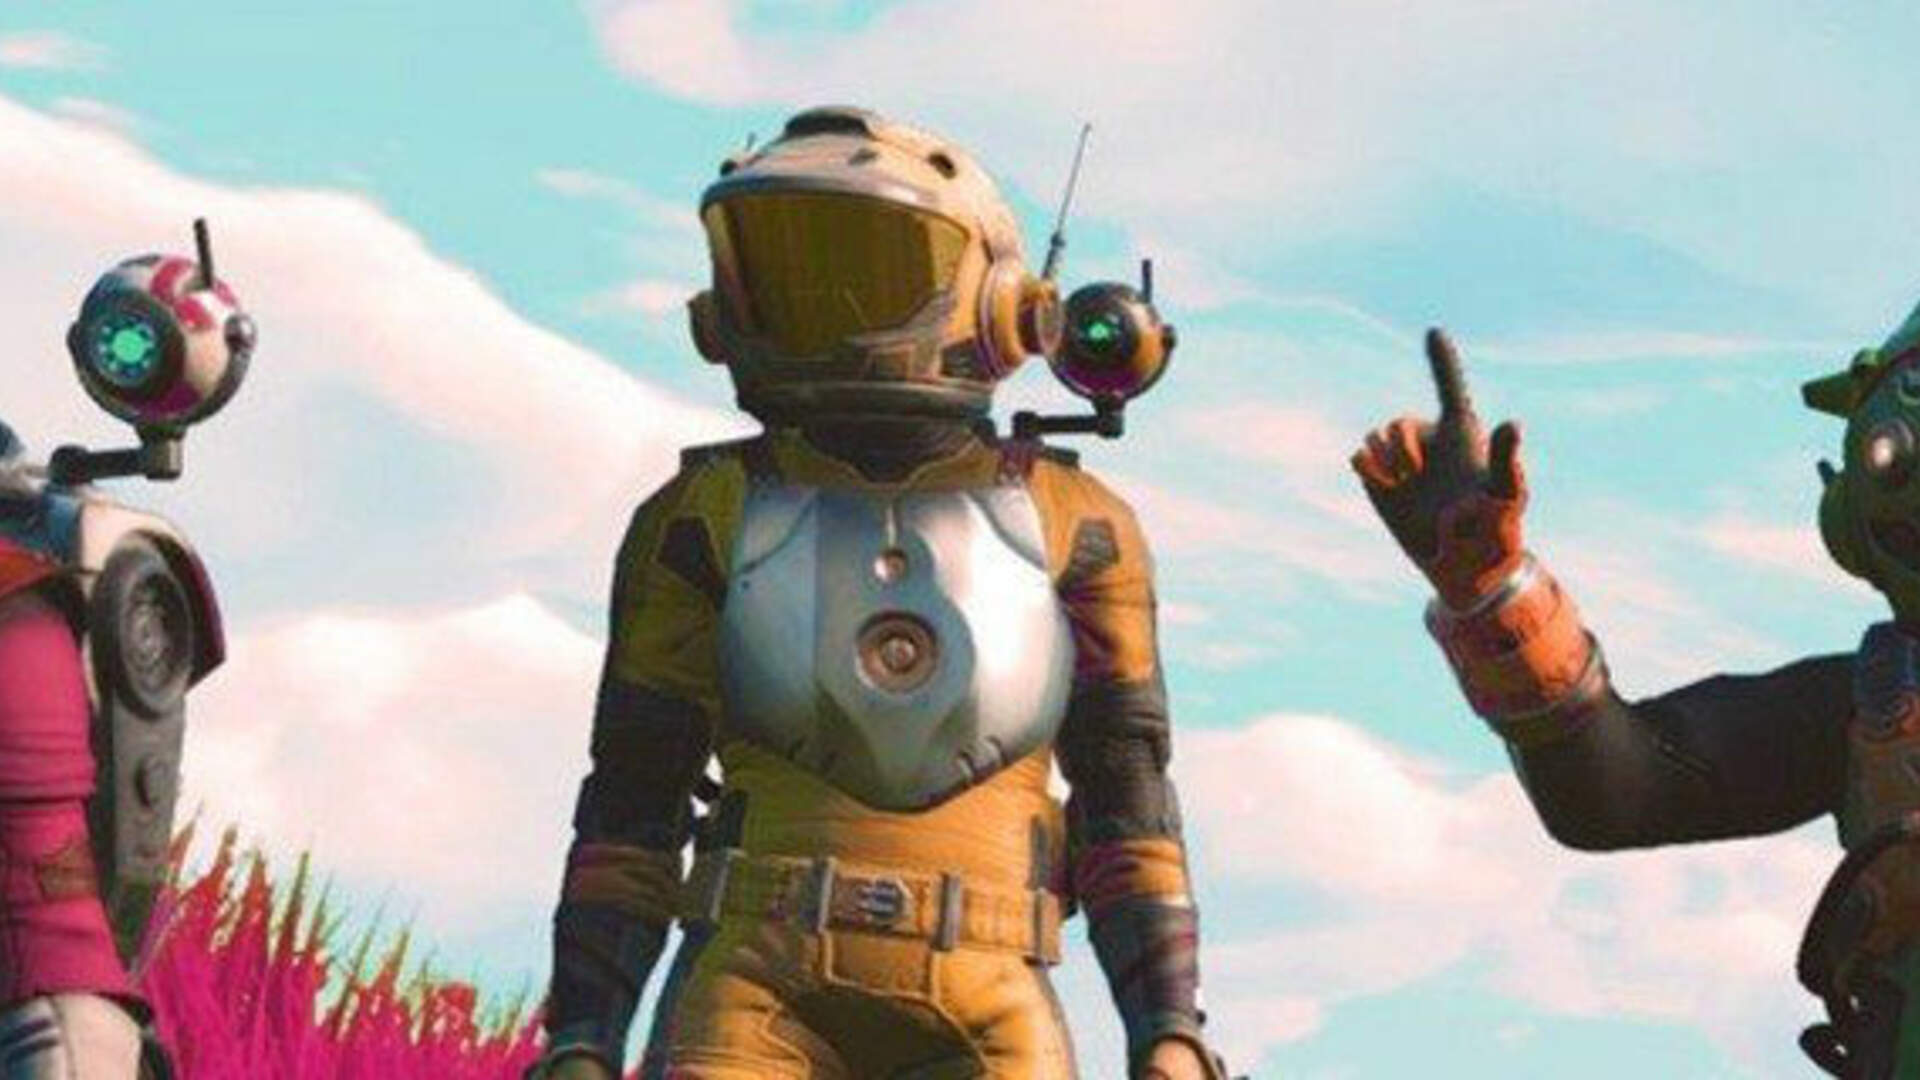 No Man's Sky Next Patch 1.51 Fixes a Lot of Bugs